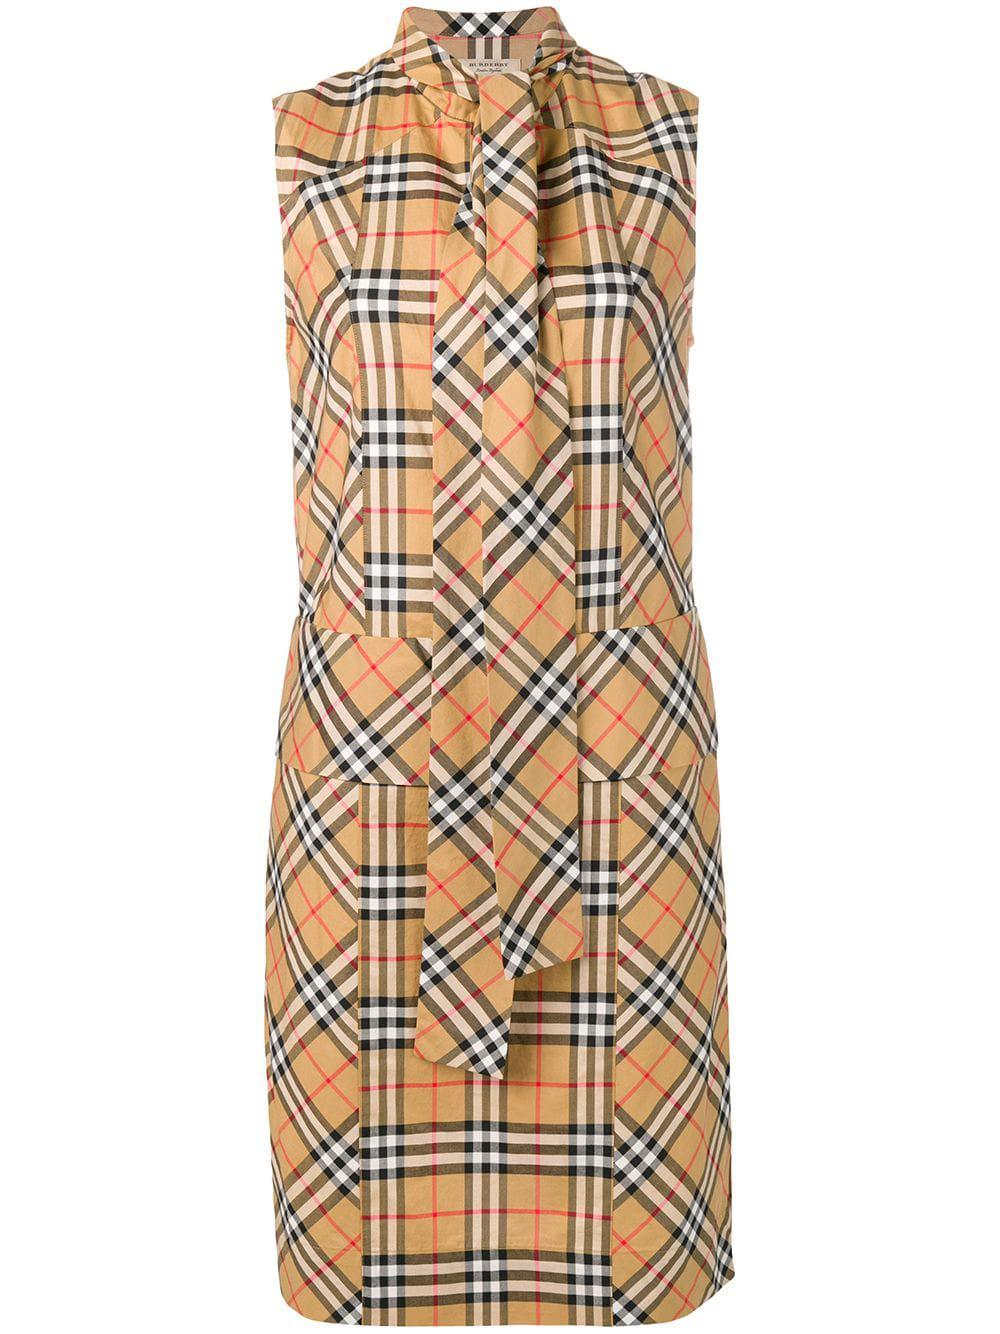 847ea46bb9392d Lyst - Burberry Checked Dress in Natural